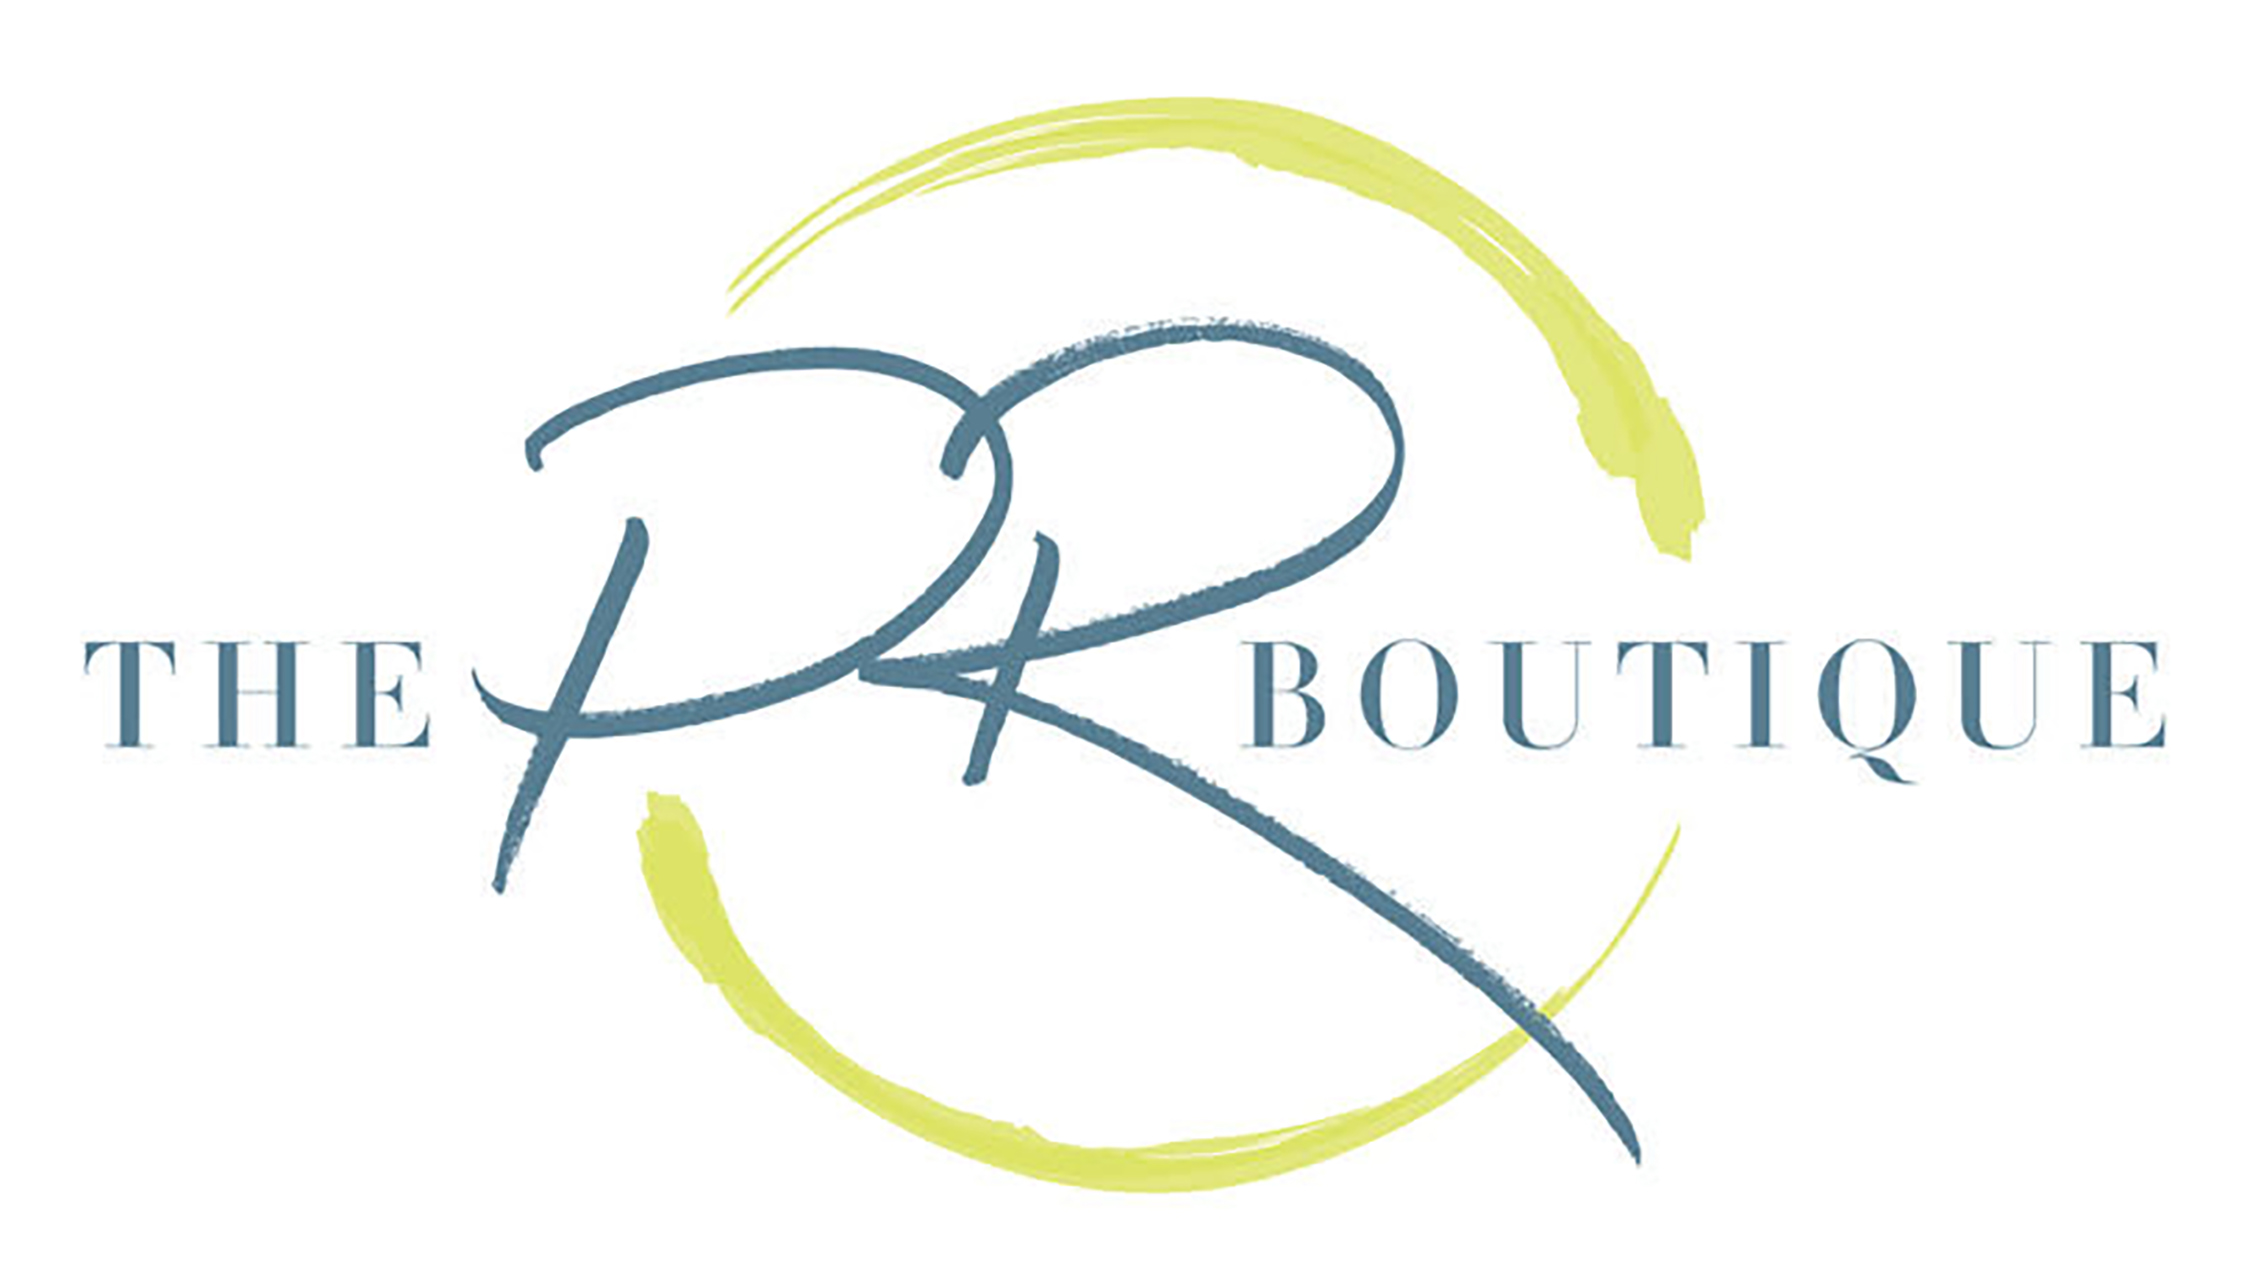 The PR Boutique